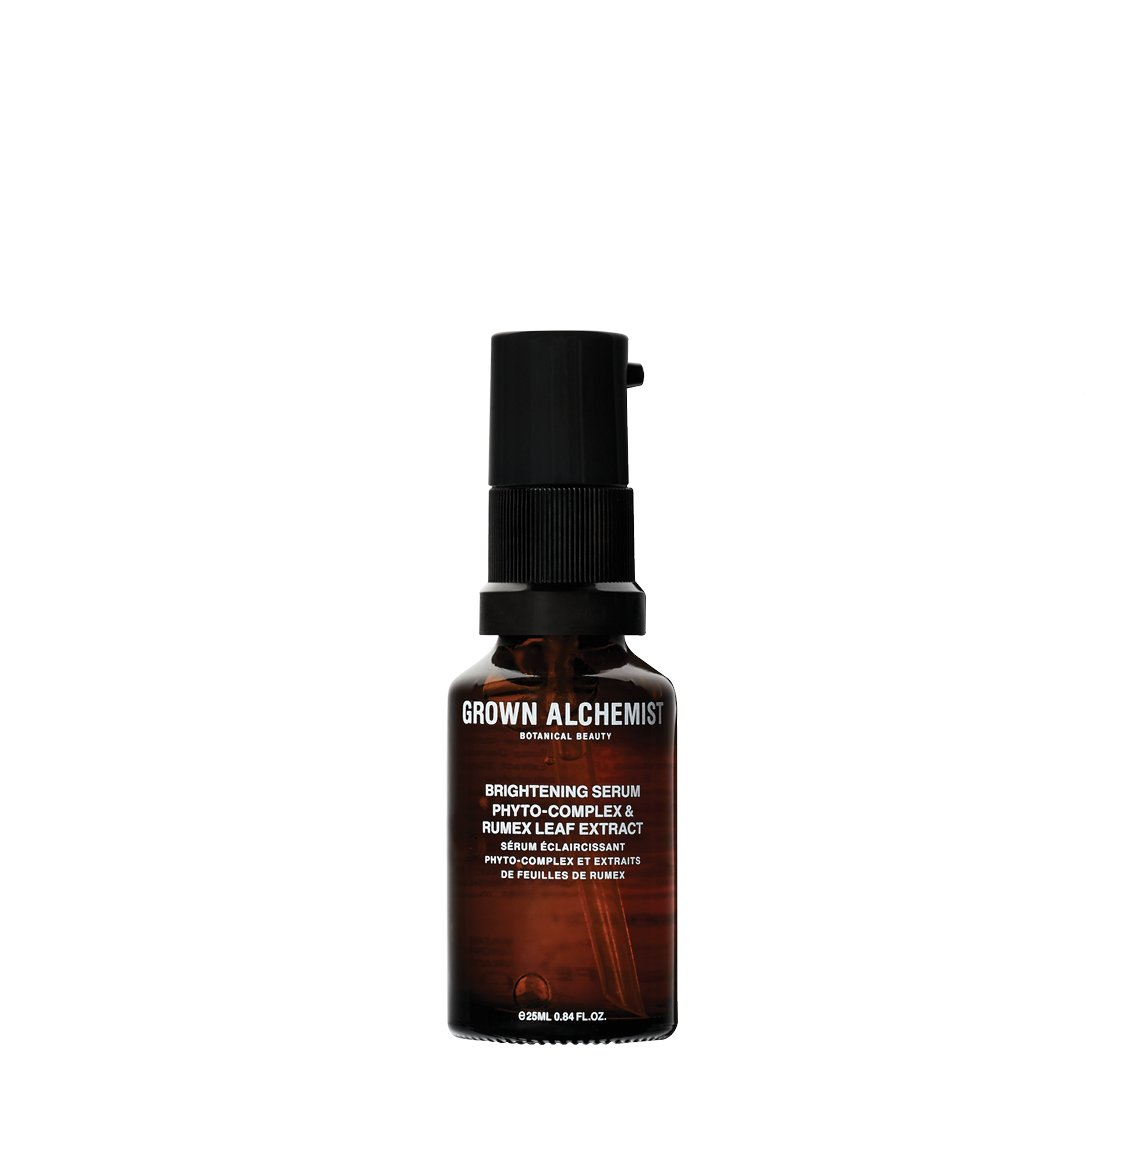 Grown_Alchemist_Brightening_Serum_Phyto-Complex_Rumex_Leaf_Extract_The_Project_Garments_A